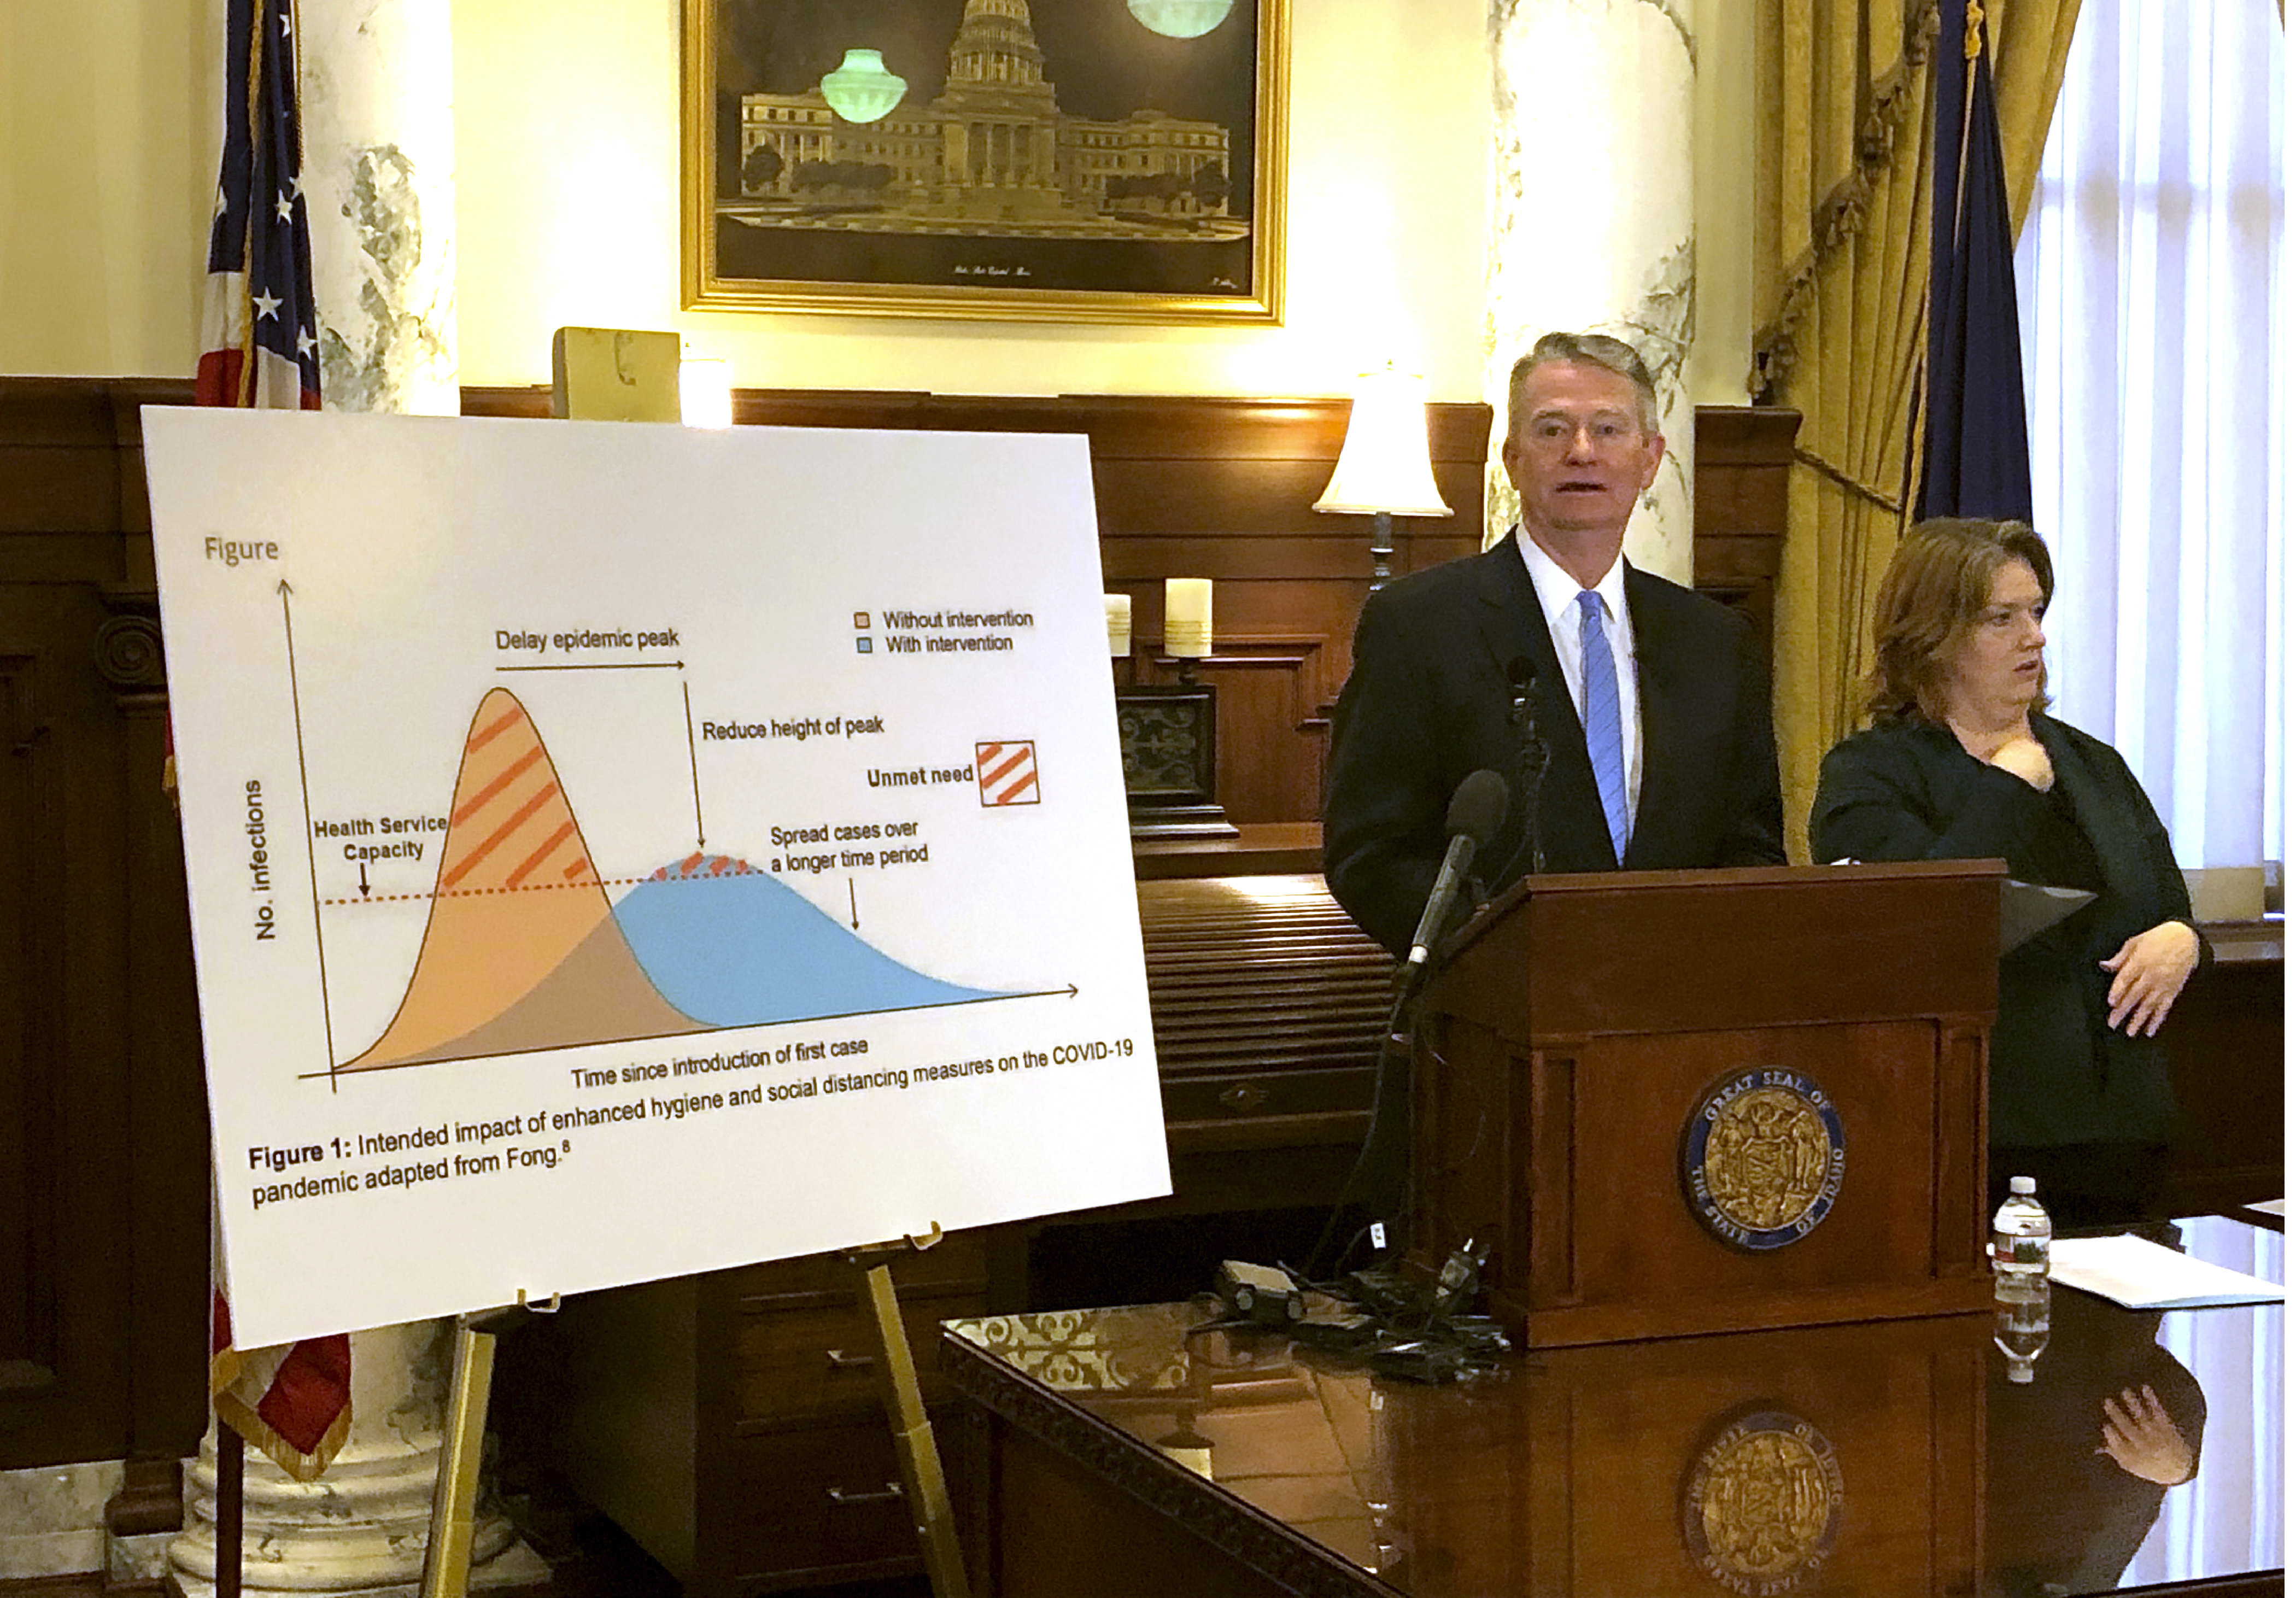 Idaho Gov. Brad Little proclaims a state of emergency in Idaho as a proactive step to prevent the spread of coronavirus, Friday, March 13, 2020, at his Statehouse office in Boise, Idaho. State officials say more than 100 people in Idaho have so far been tested, but no one has been positive for COVID-19, the illness caused by the new coronavirus.